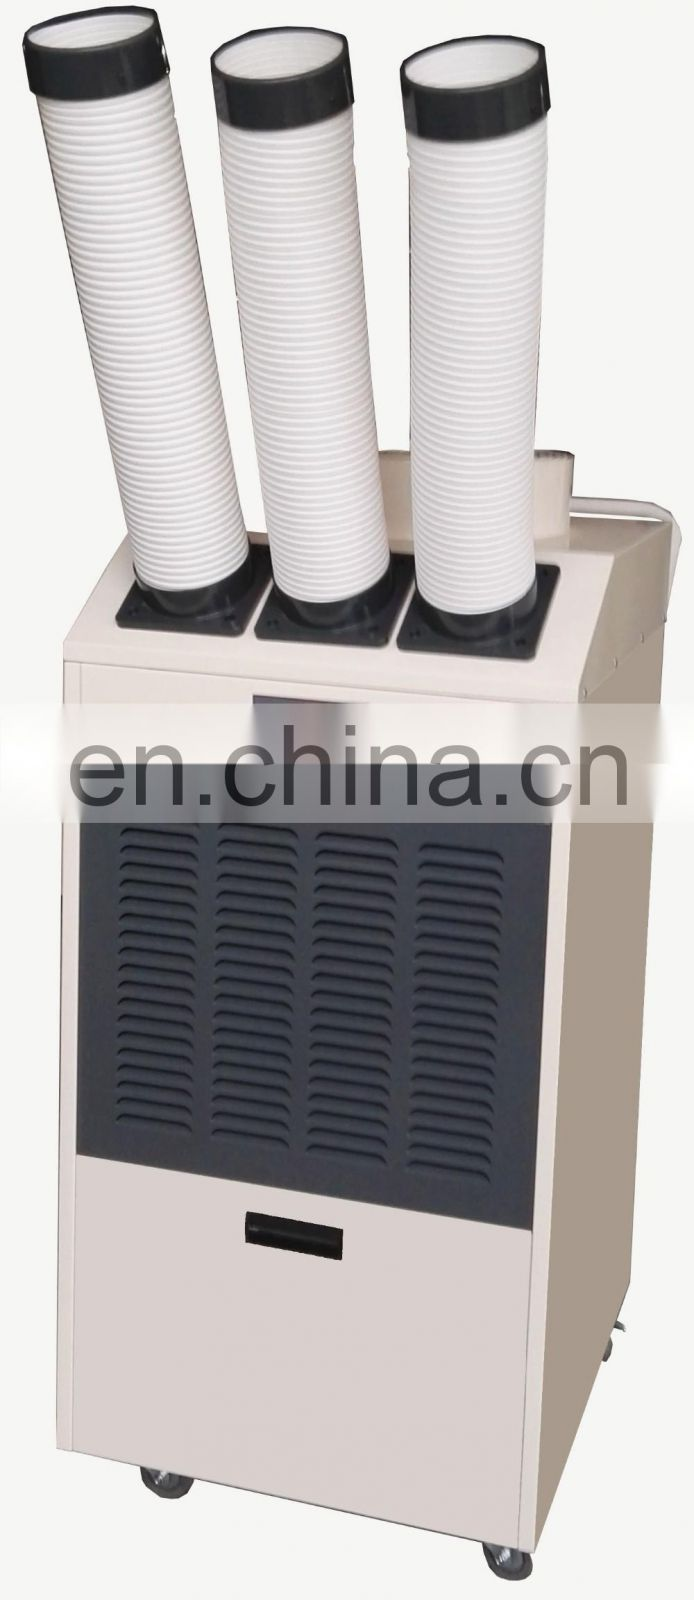 Spot air conditioner for workshop